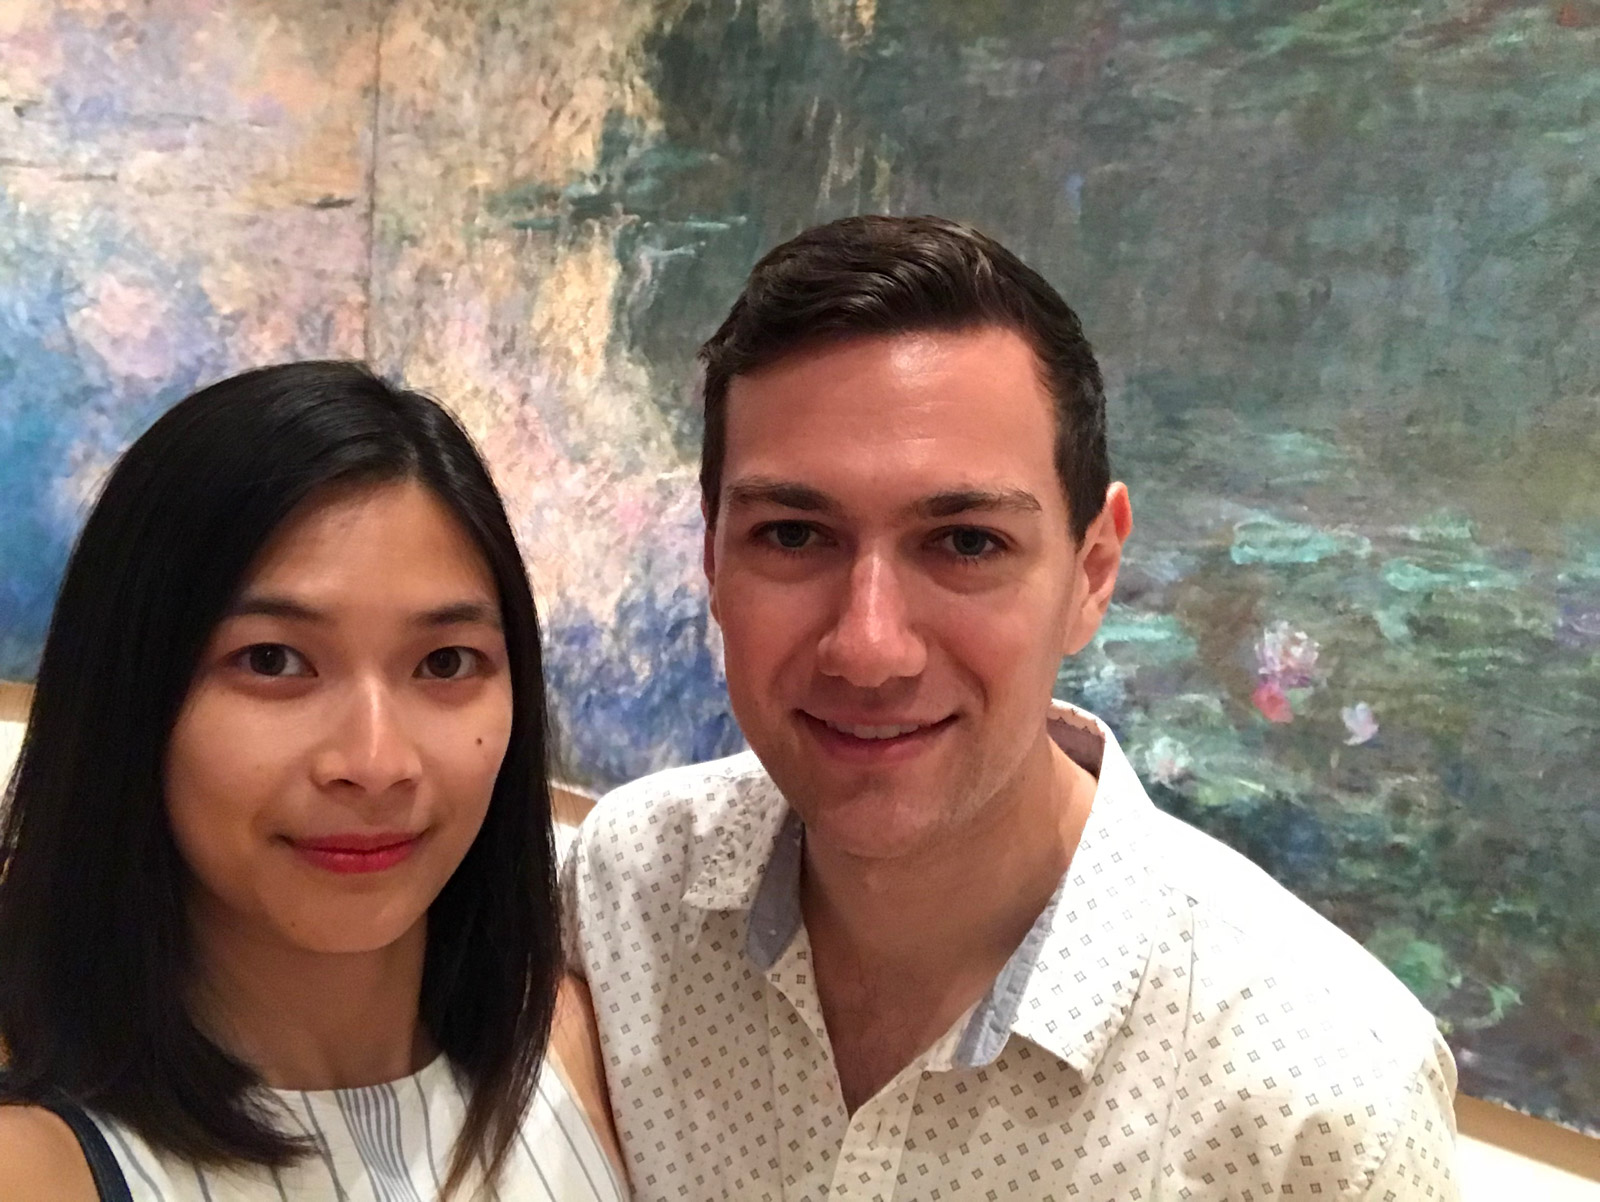 A man and woman, smiling, with a mural painting of water lilies behind them